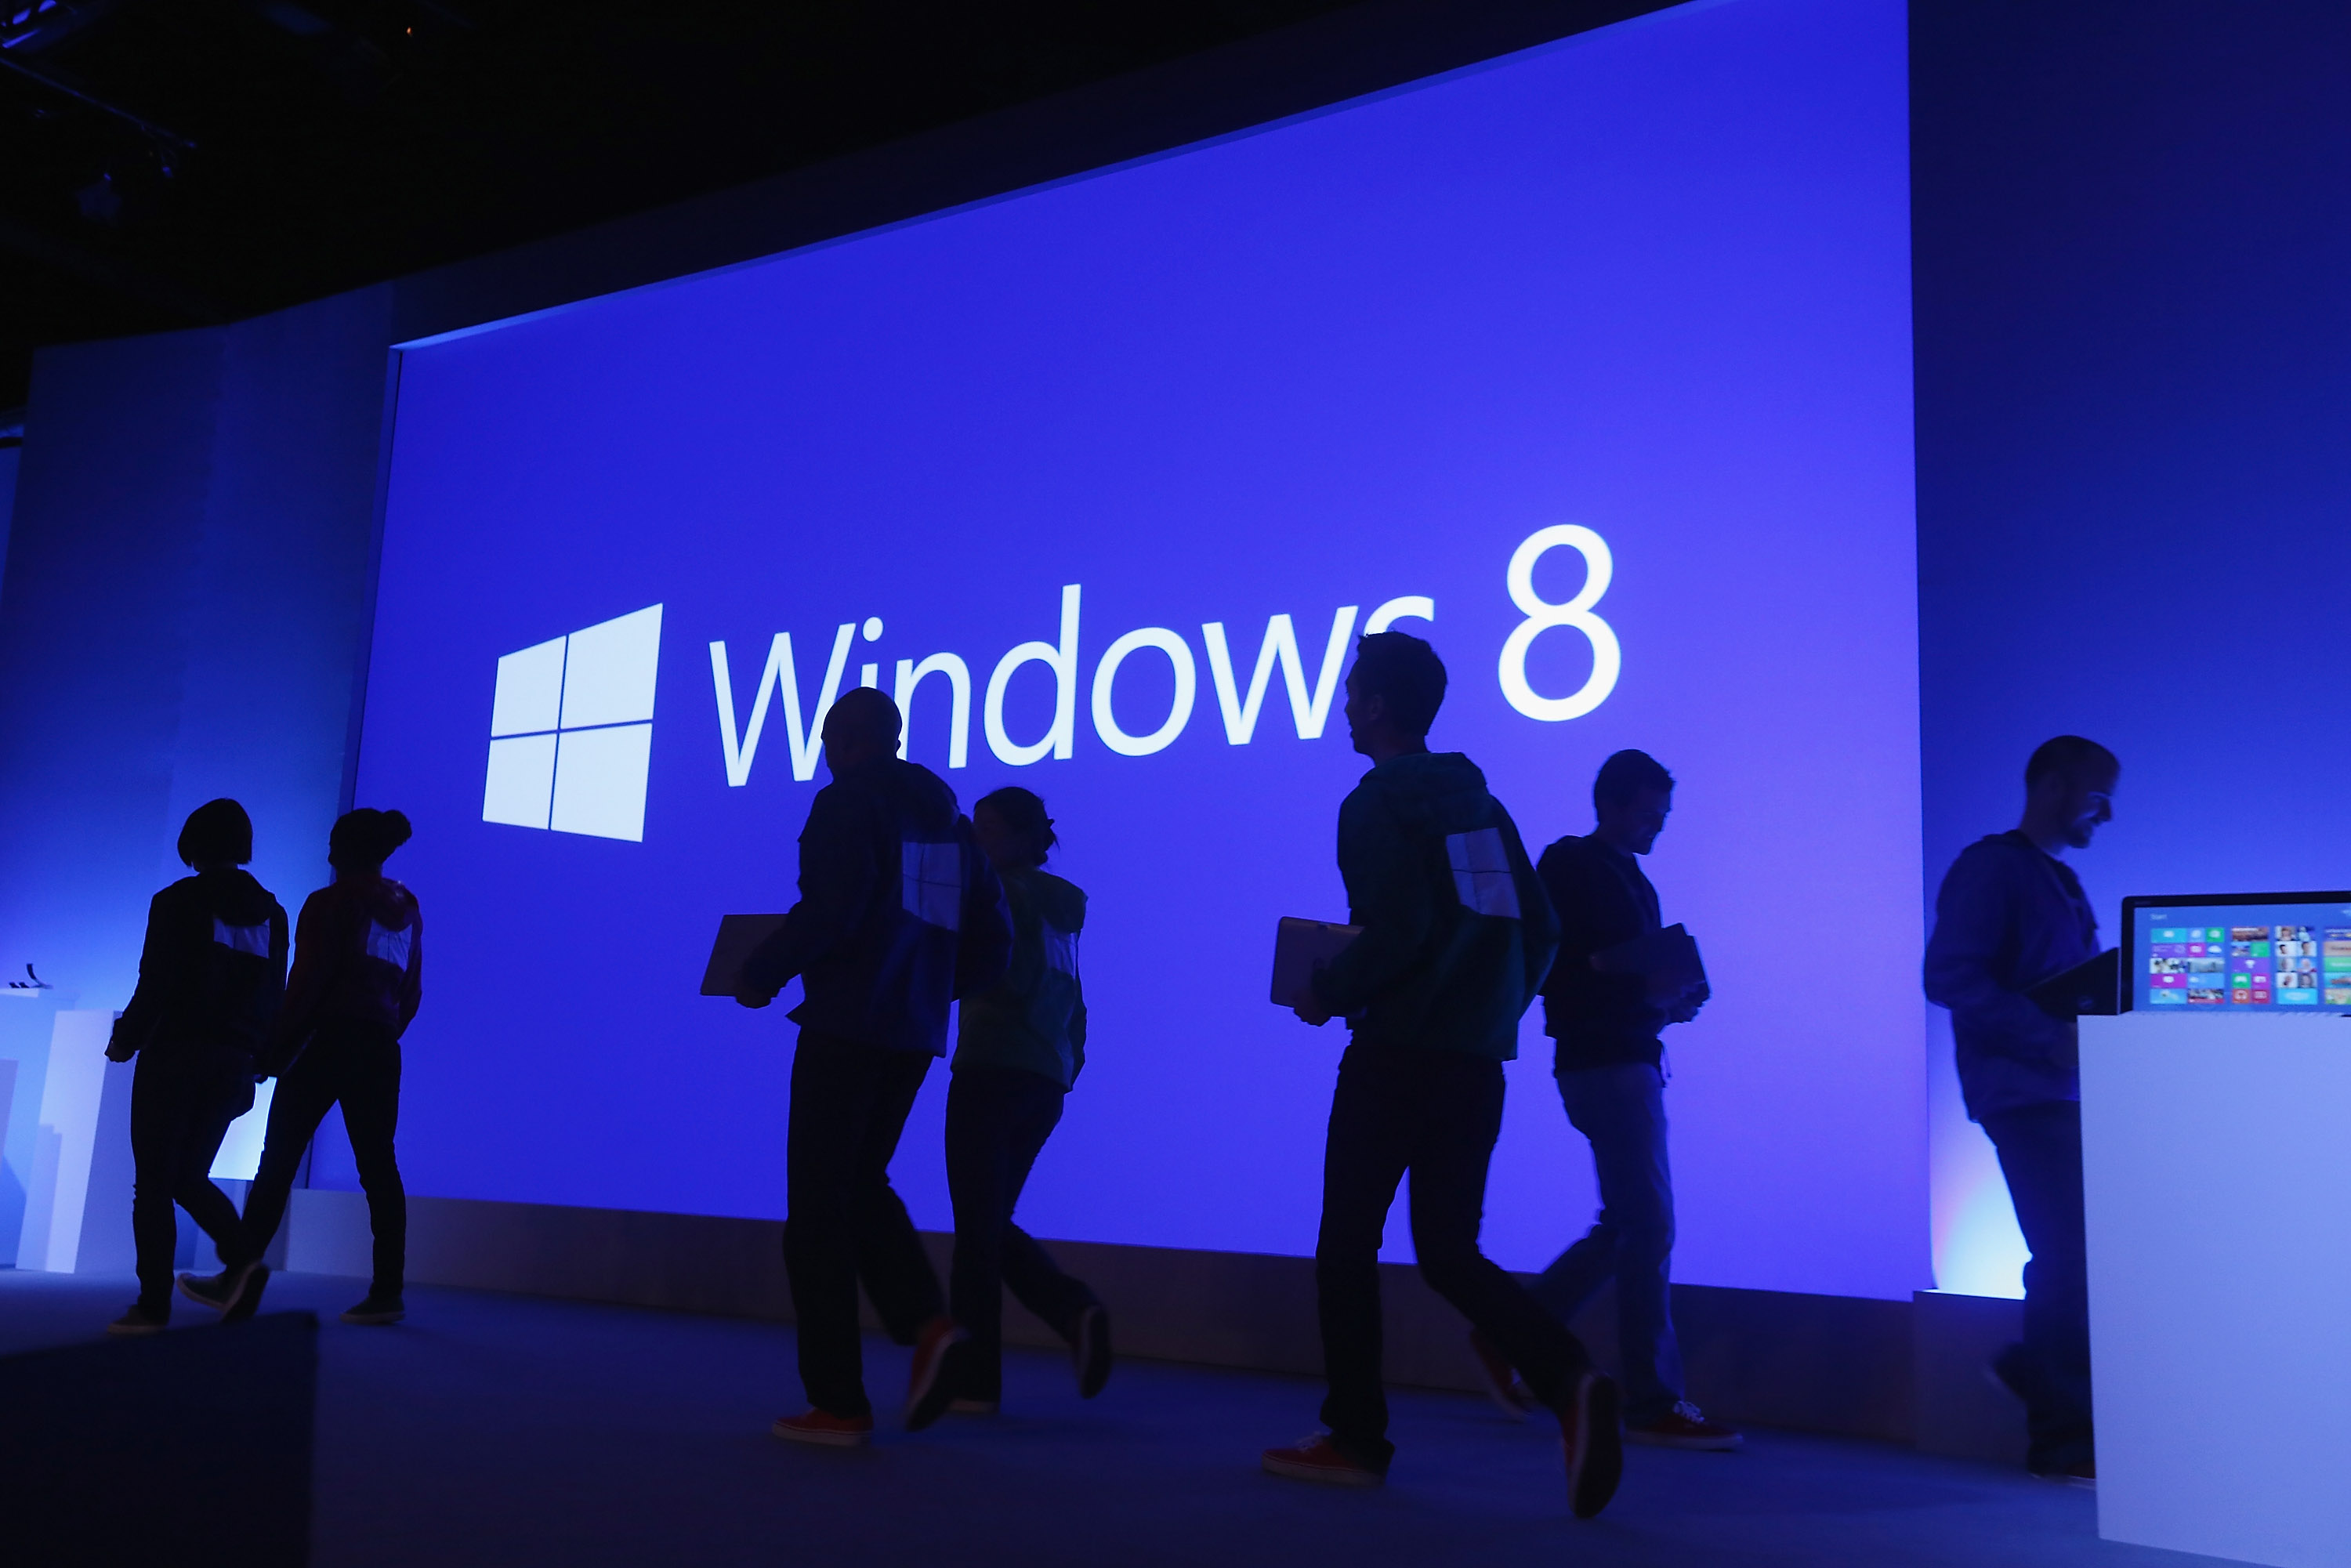 People walk past a display at a press conference unveiling the Microsoft Windows 8 operating system on October 25, 2012 in New York City.